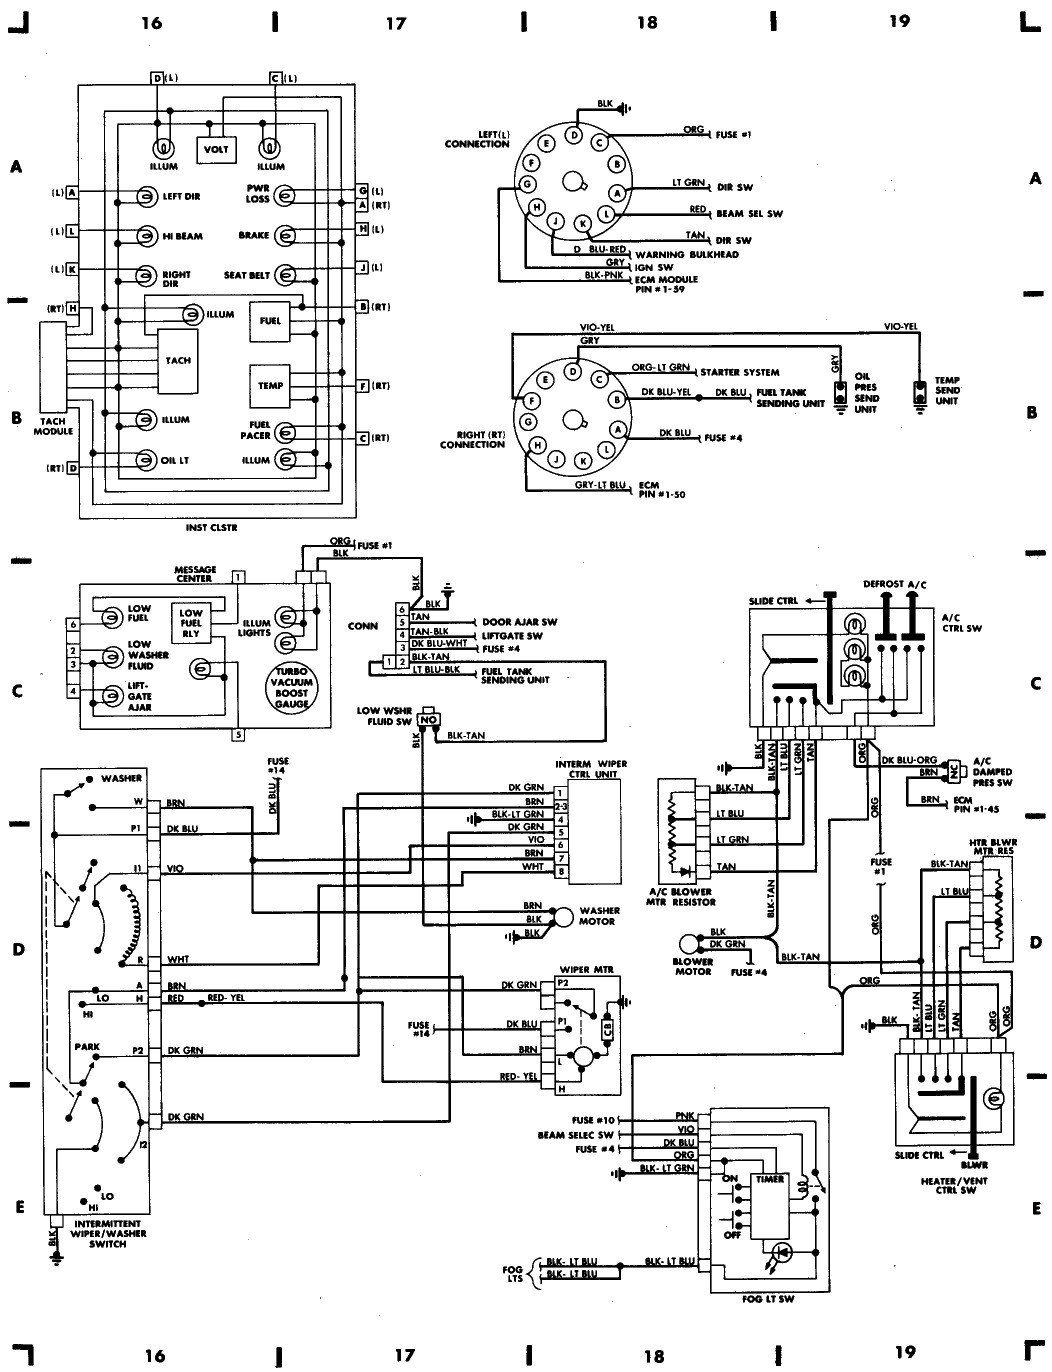 1984 Dodge Ramcharger Fuse Box. Dodge. Auto Wiring Diagram